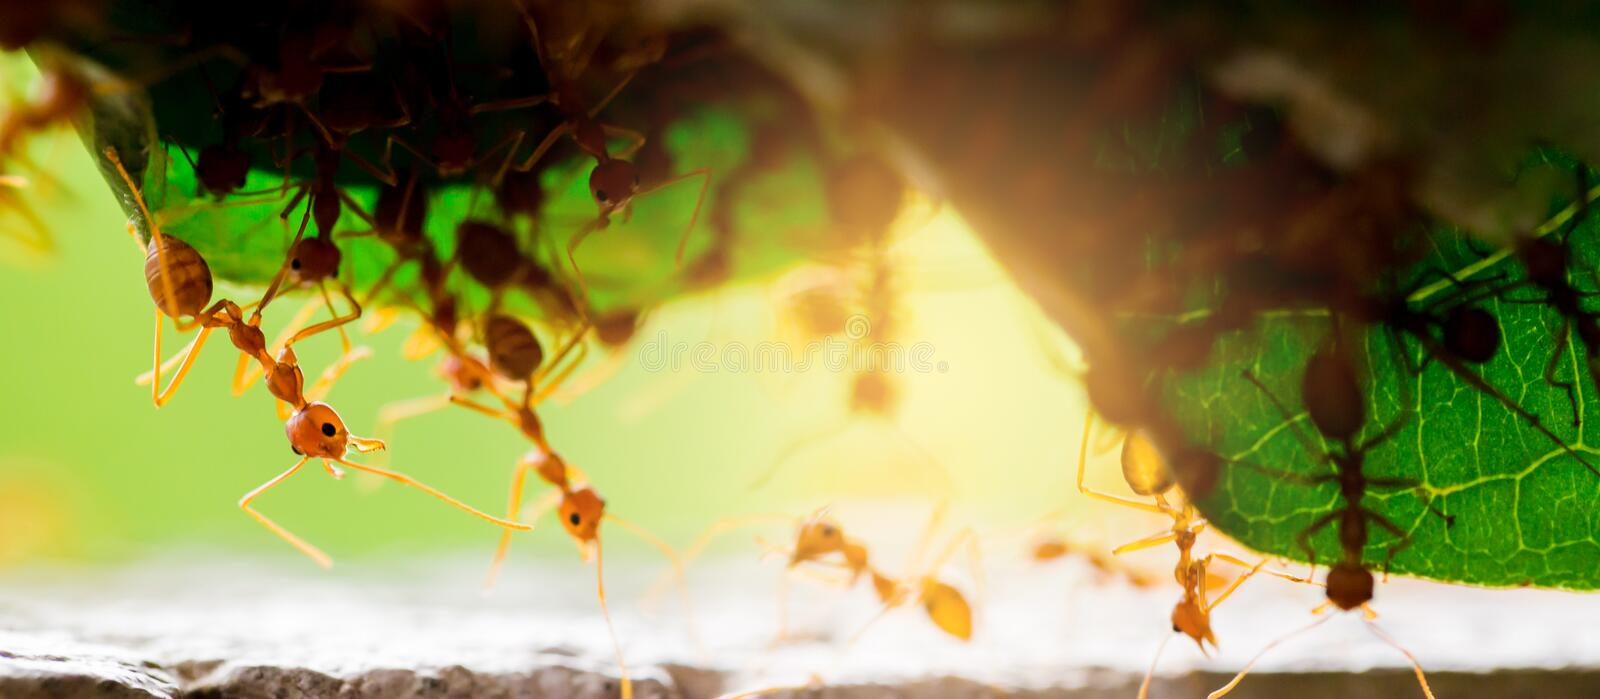 Macro shot of red ant in nature with selective focus. The conception of leadership and teamwork royalty free stock photo